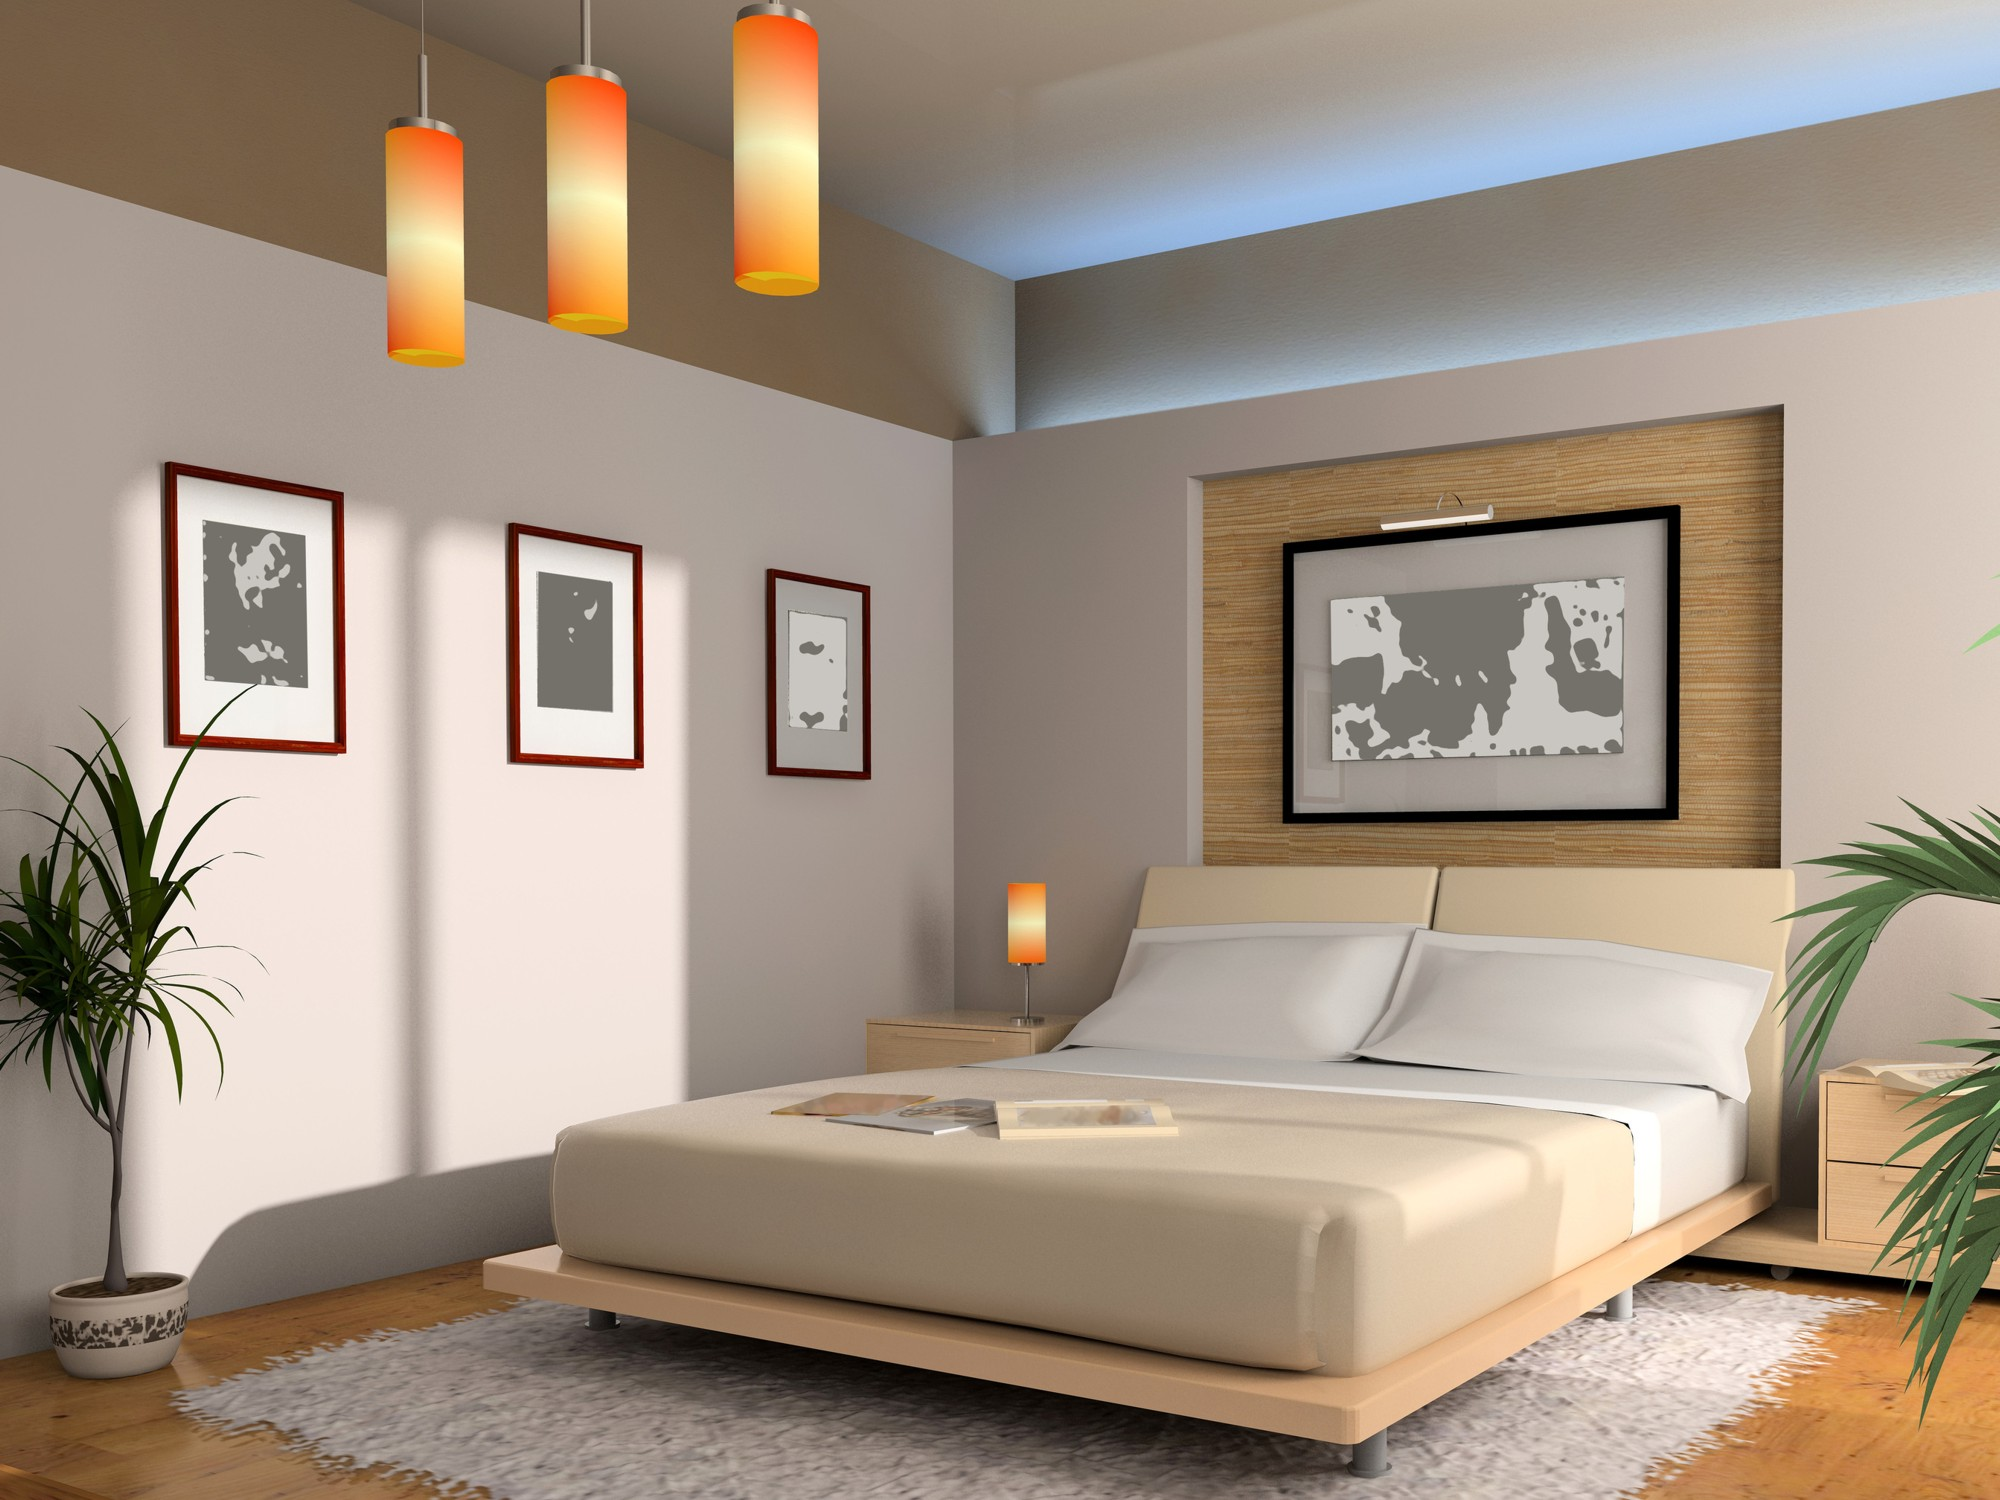 modern interior of a bedroom with illumination dekorstore. Black Bedroom Furniture Sets. Home Design Ideas